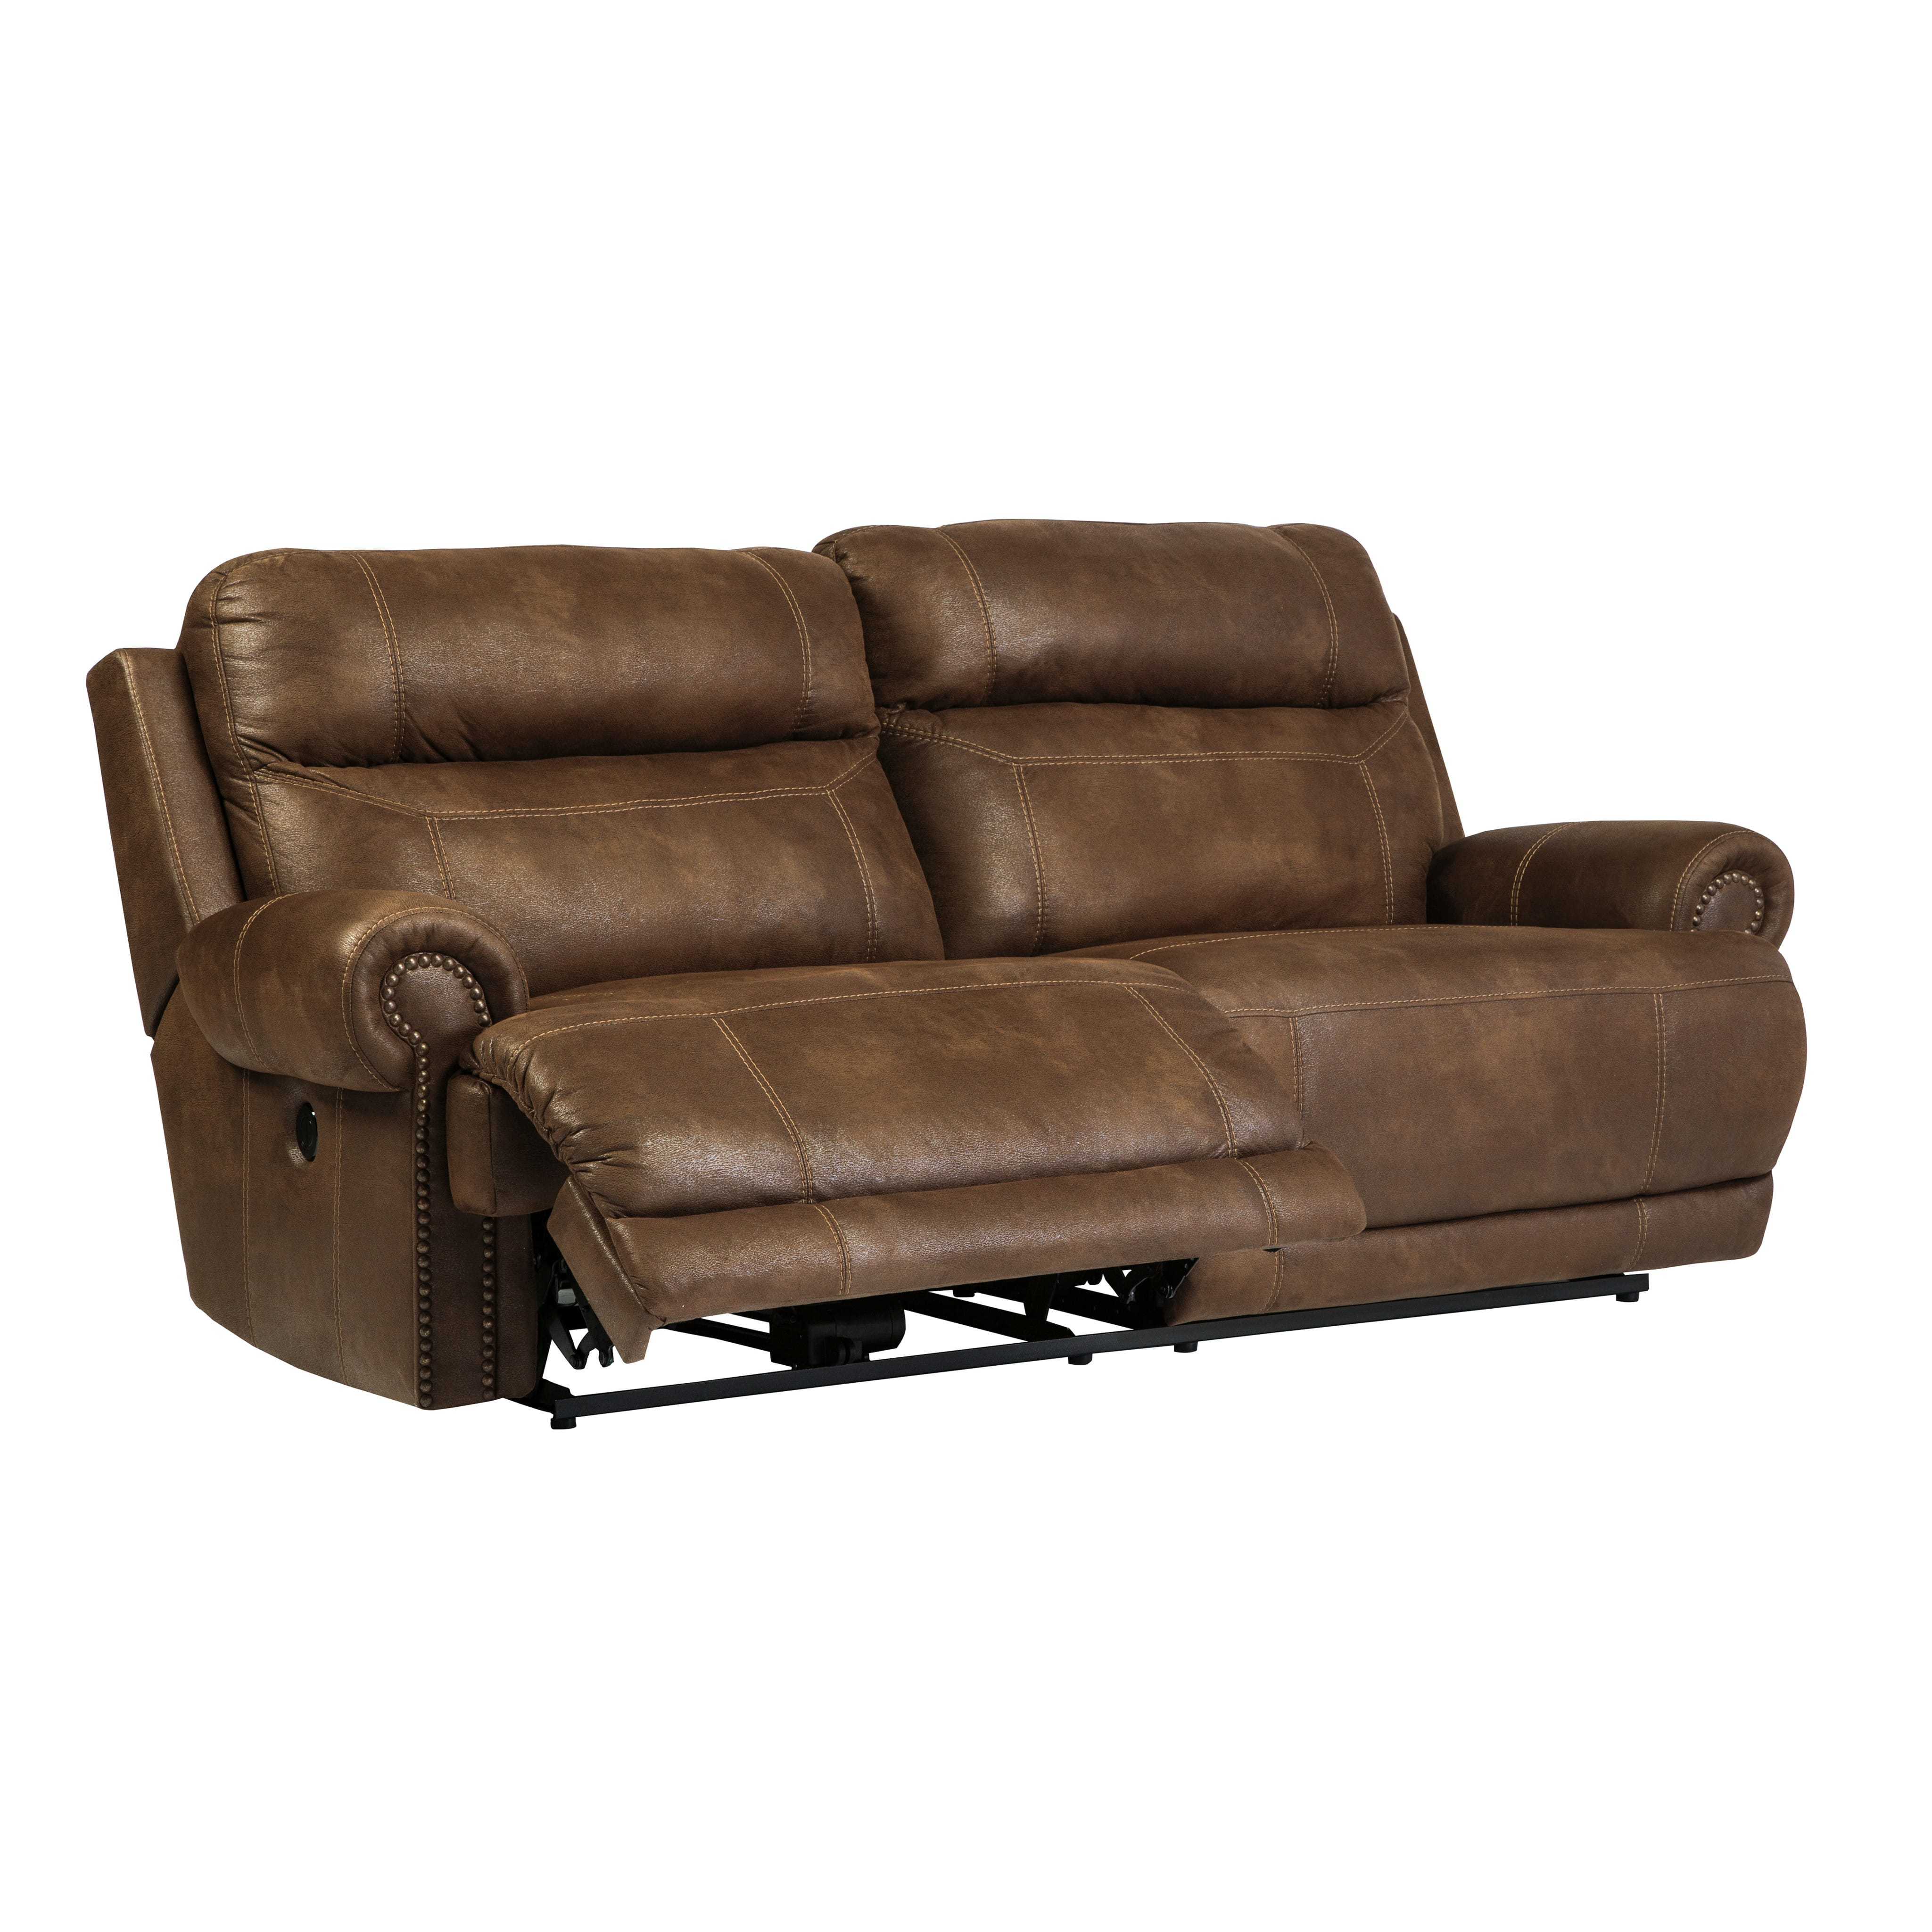 Floor Sample Austere 2 Seat Brown Reclining Sofa By Ashley